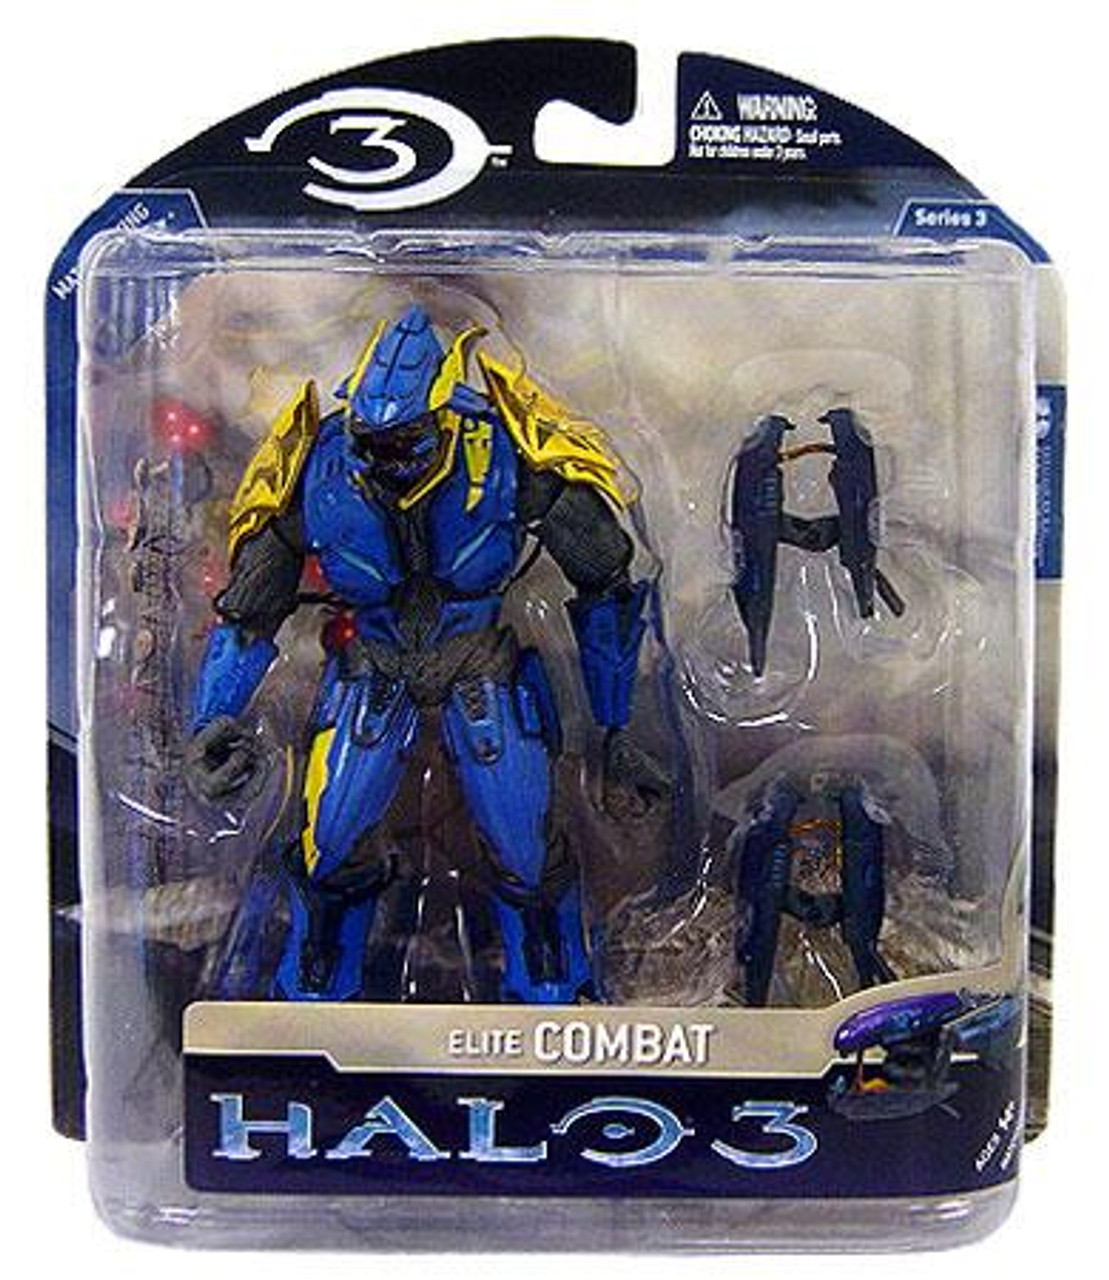 McFarlane Toys Halo 3 Series 3 lite Combat Exclusive Action Figure [Blue & Yellow]